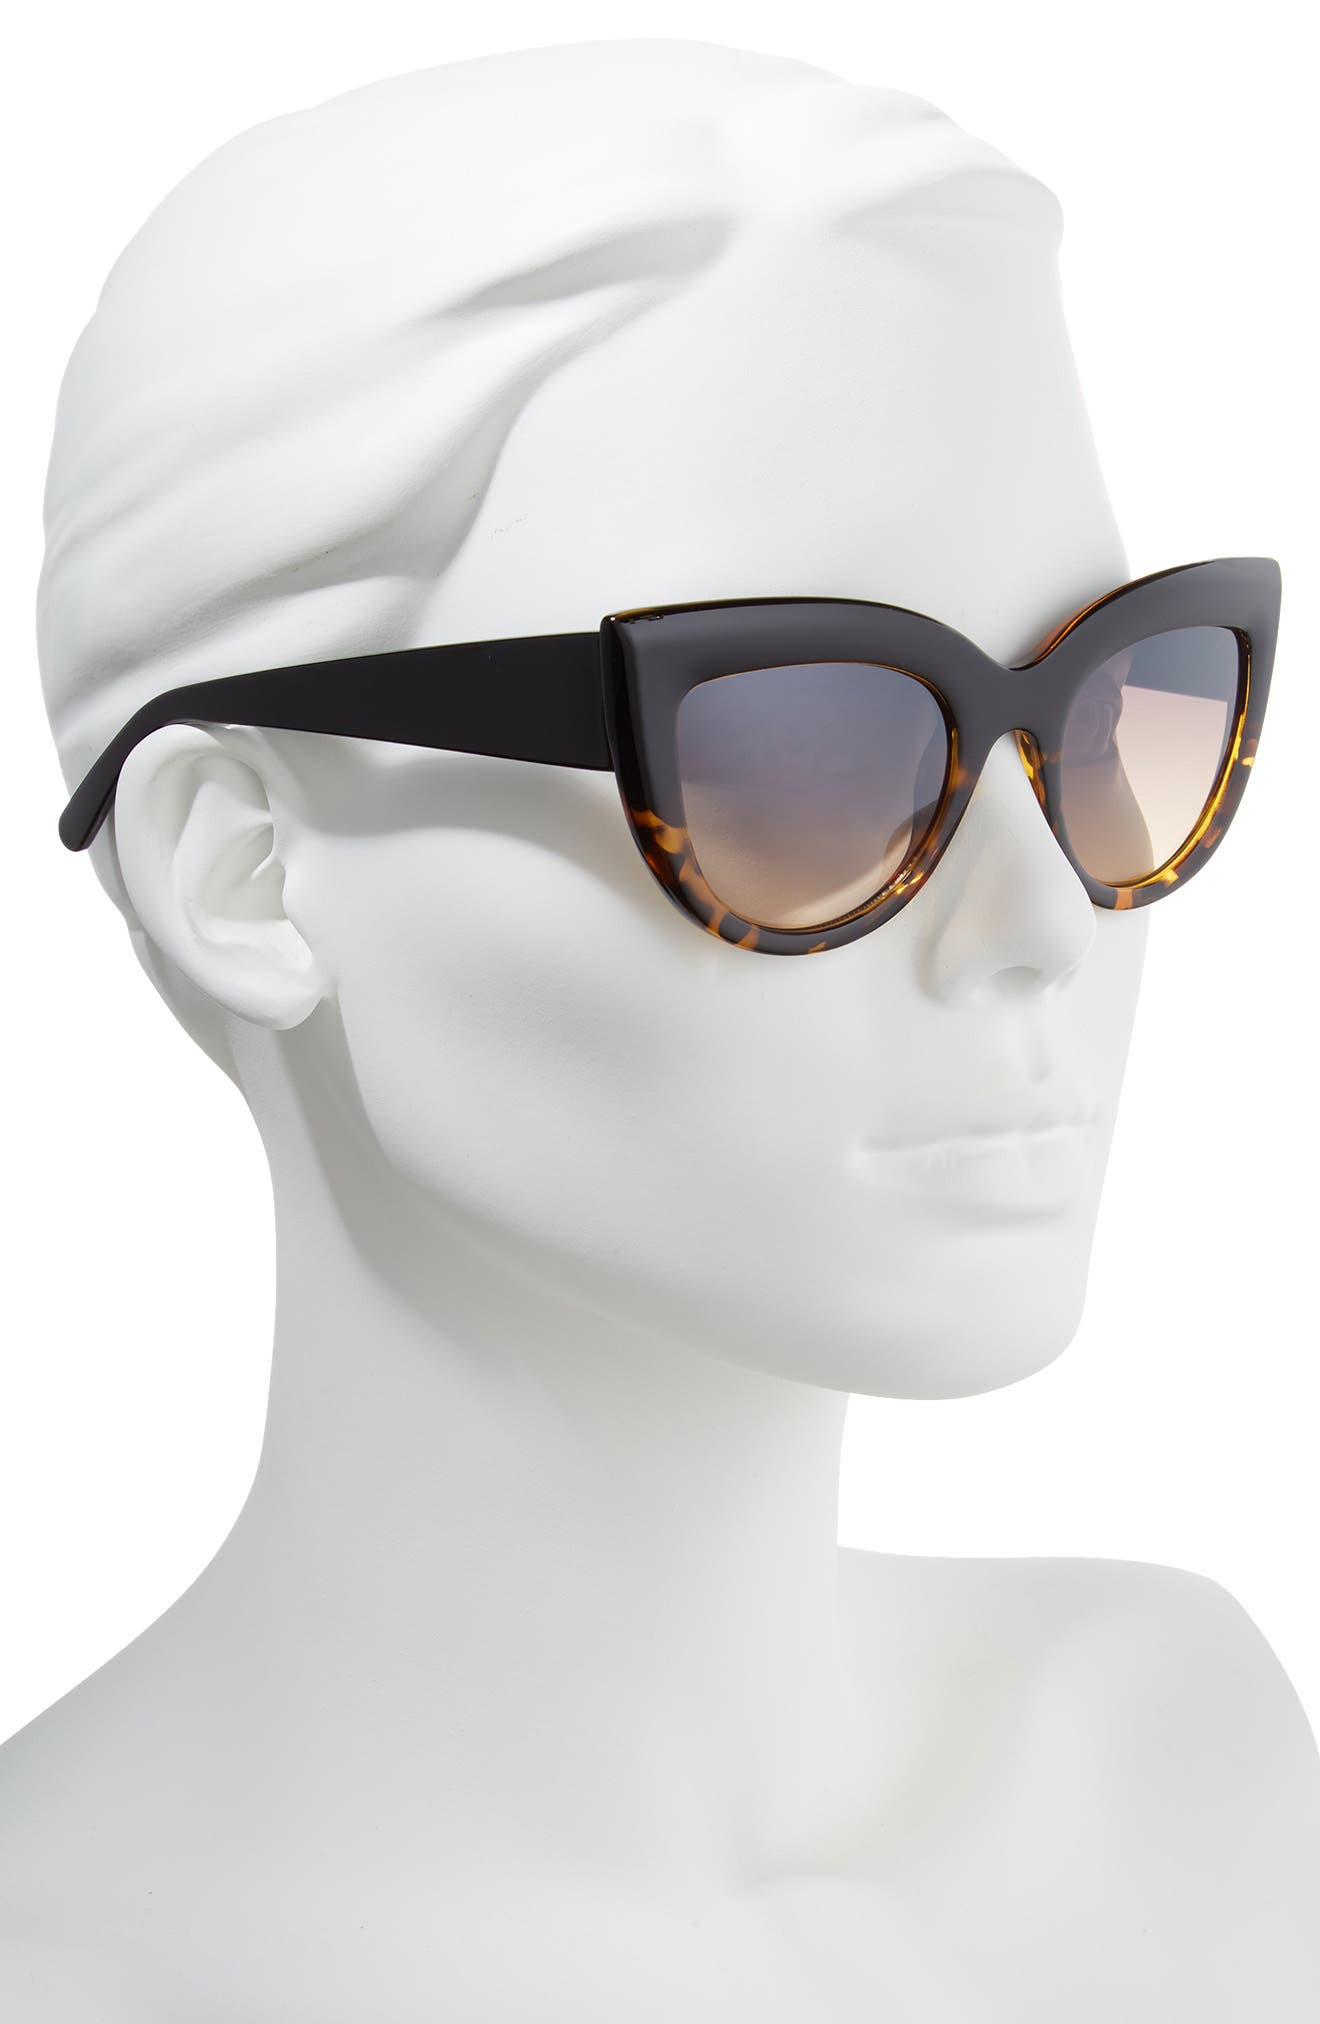 60mm Two-Tone Cat Eye Sunglasses,                             Alternate thumbnail 2, color,                             001